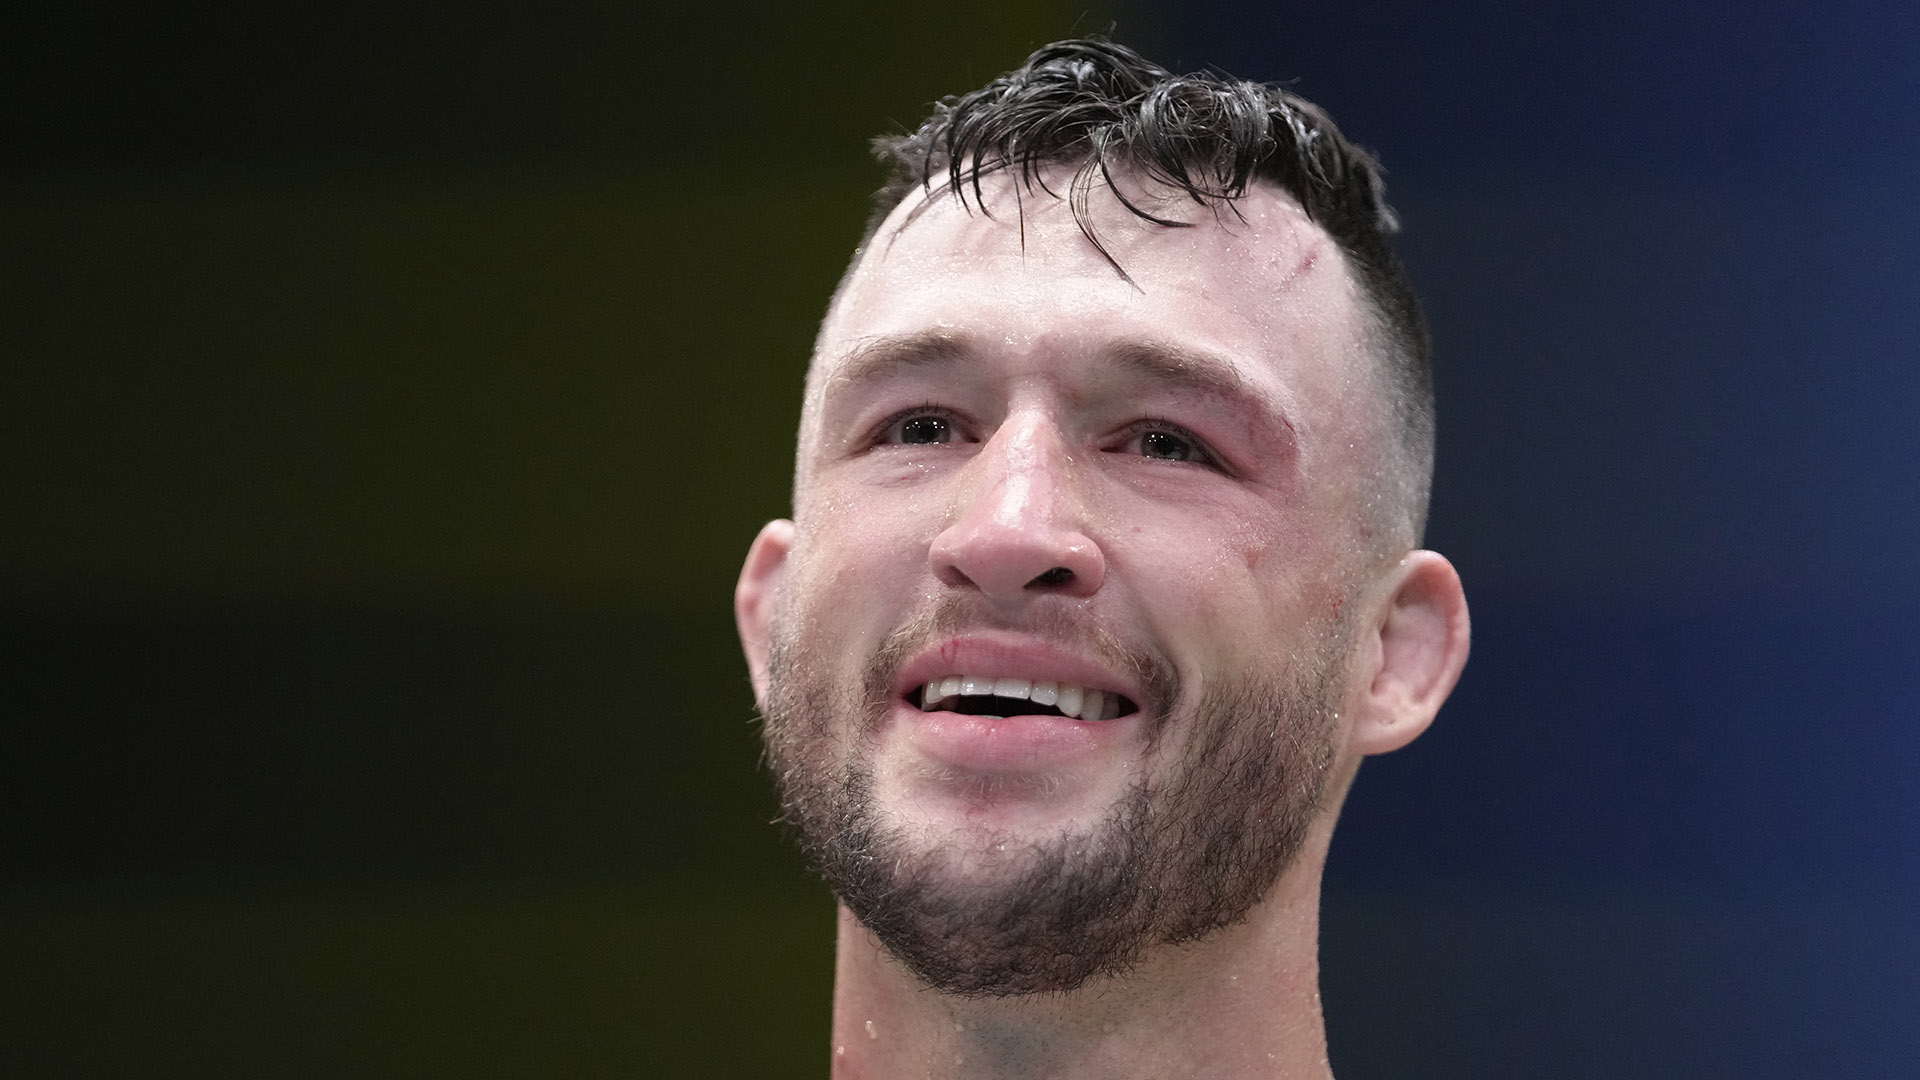 Julian Erosa reacts after his submission victory over Charles Jourdain of Canada in their fight during the UFC Fight Night event at UFC APEX on September 04, 2021 in Las Vegas, Nevada. (Photo by Jeff Bottari/Zuffa LLC)